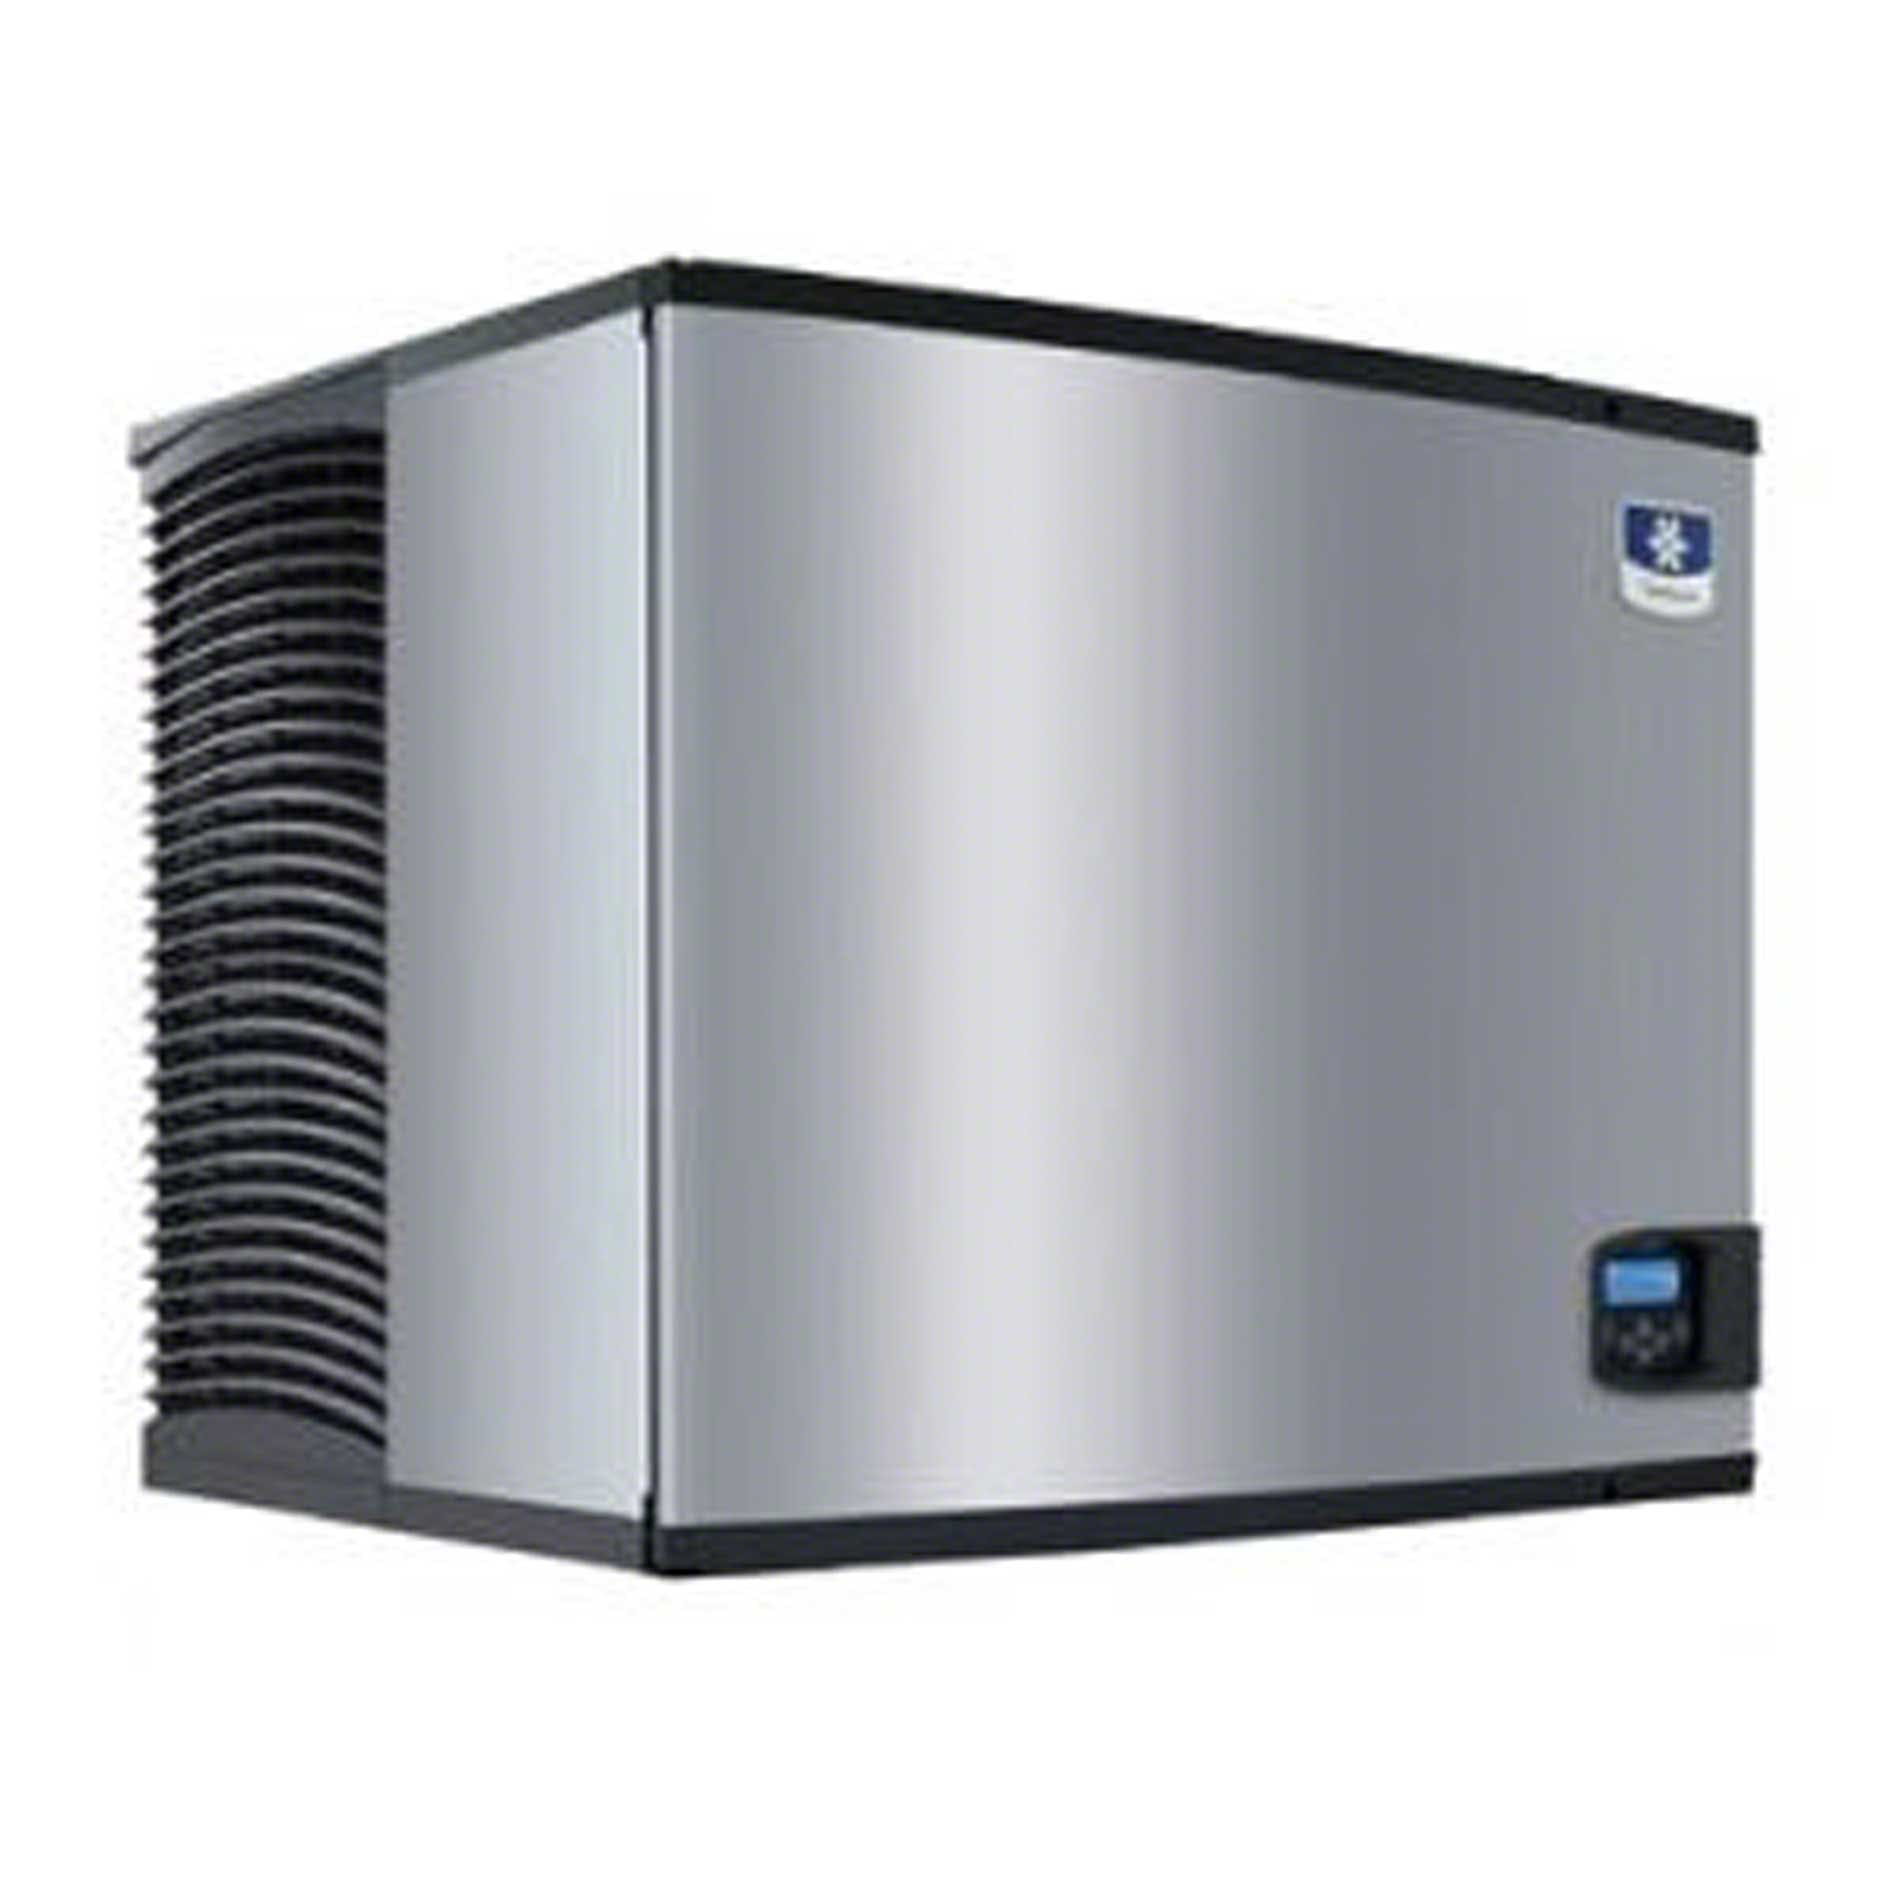 Manitowoc - IY-1404A 1550 lb. Indigo™ Series Ice Maker Ice machine sold by Food Service Warehouse